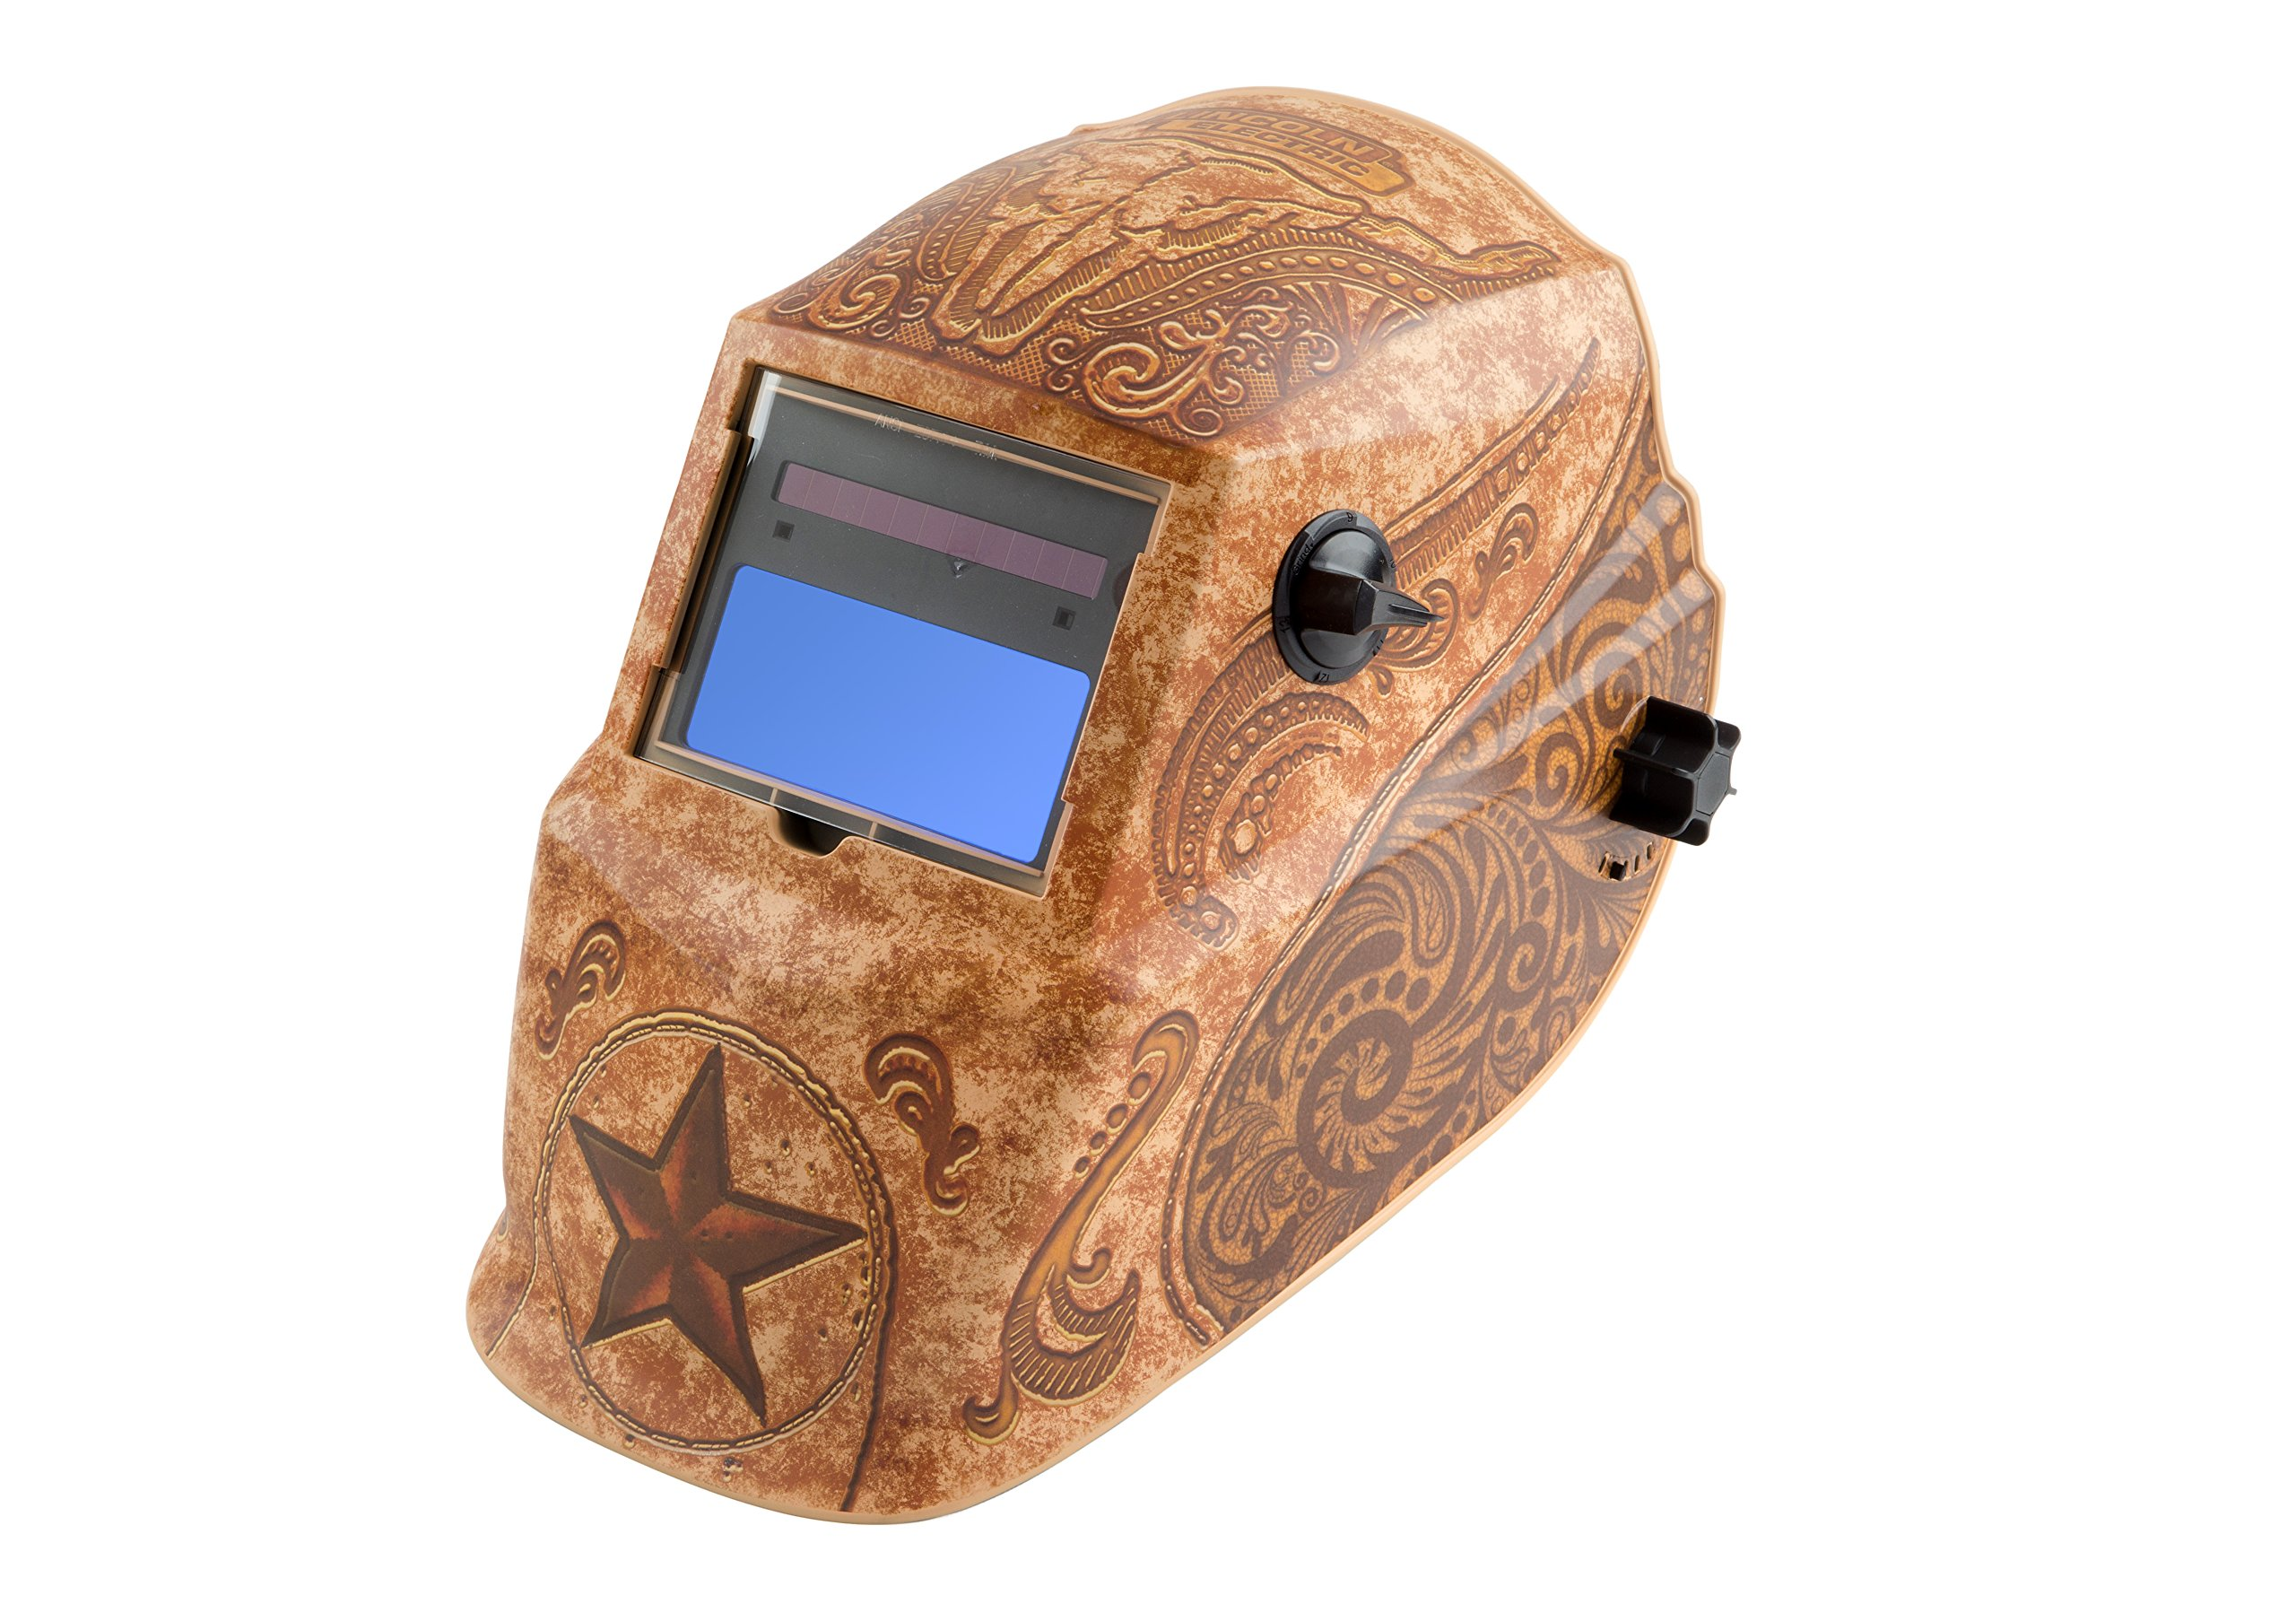 Lincoln Electric K4134-1 Lone Star Auto Darkening Welding Helmet with Grind Mode by Lincoln Electric (Image #1)